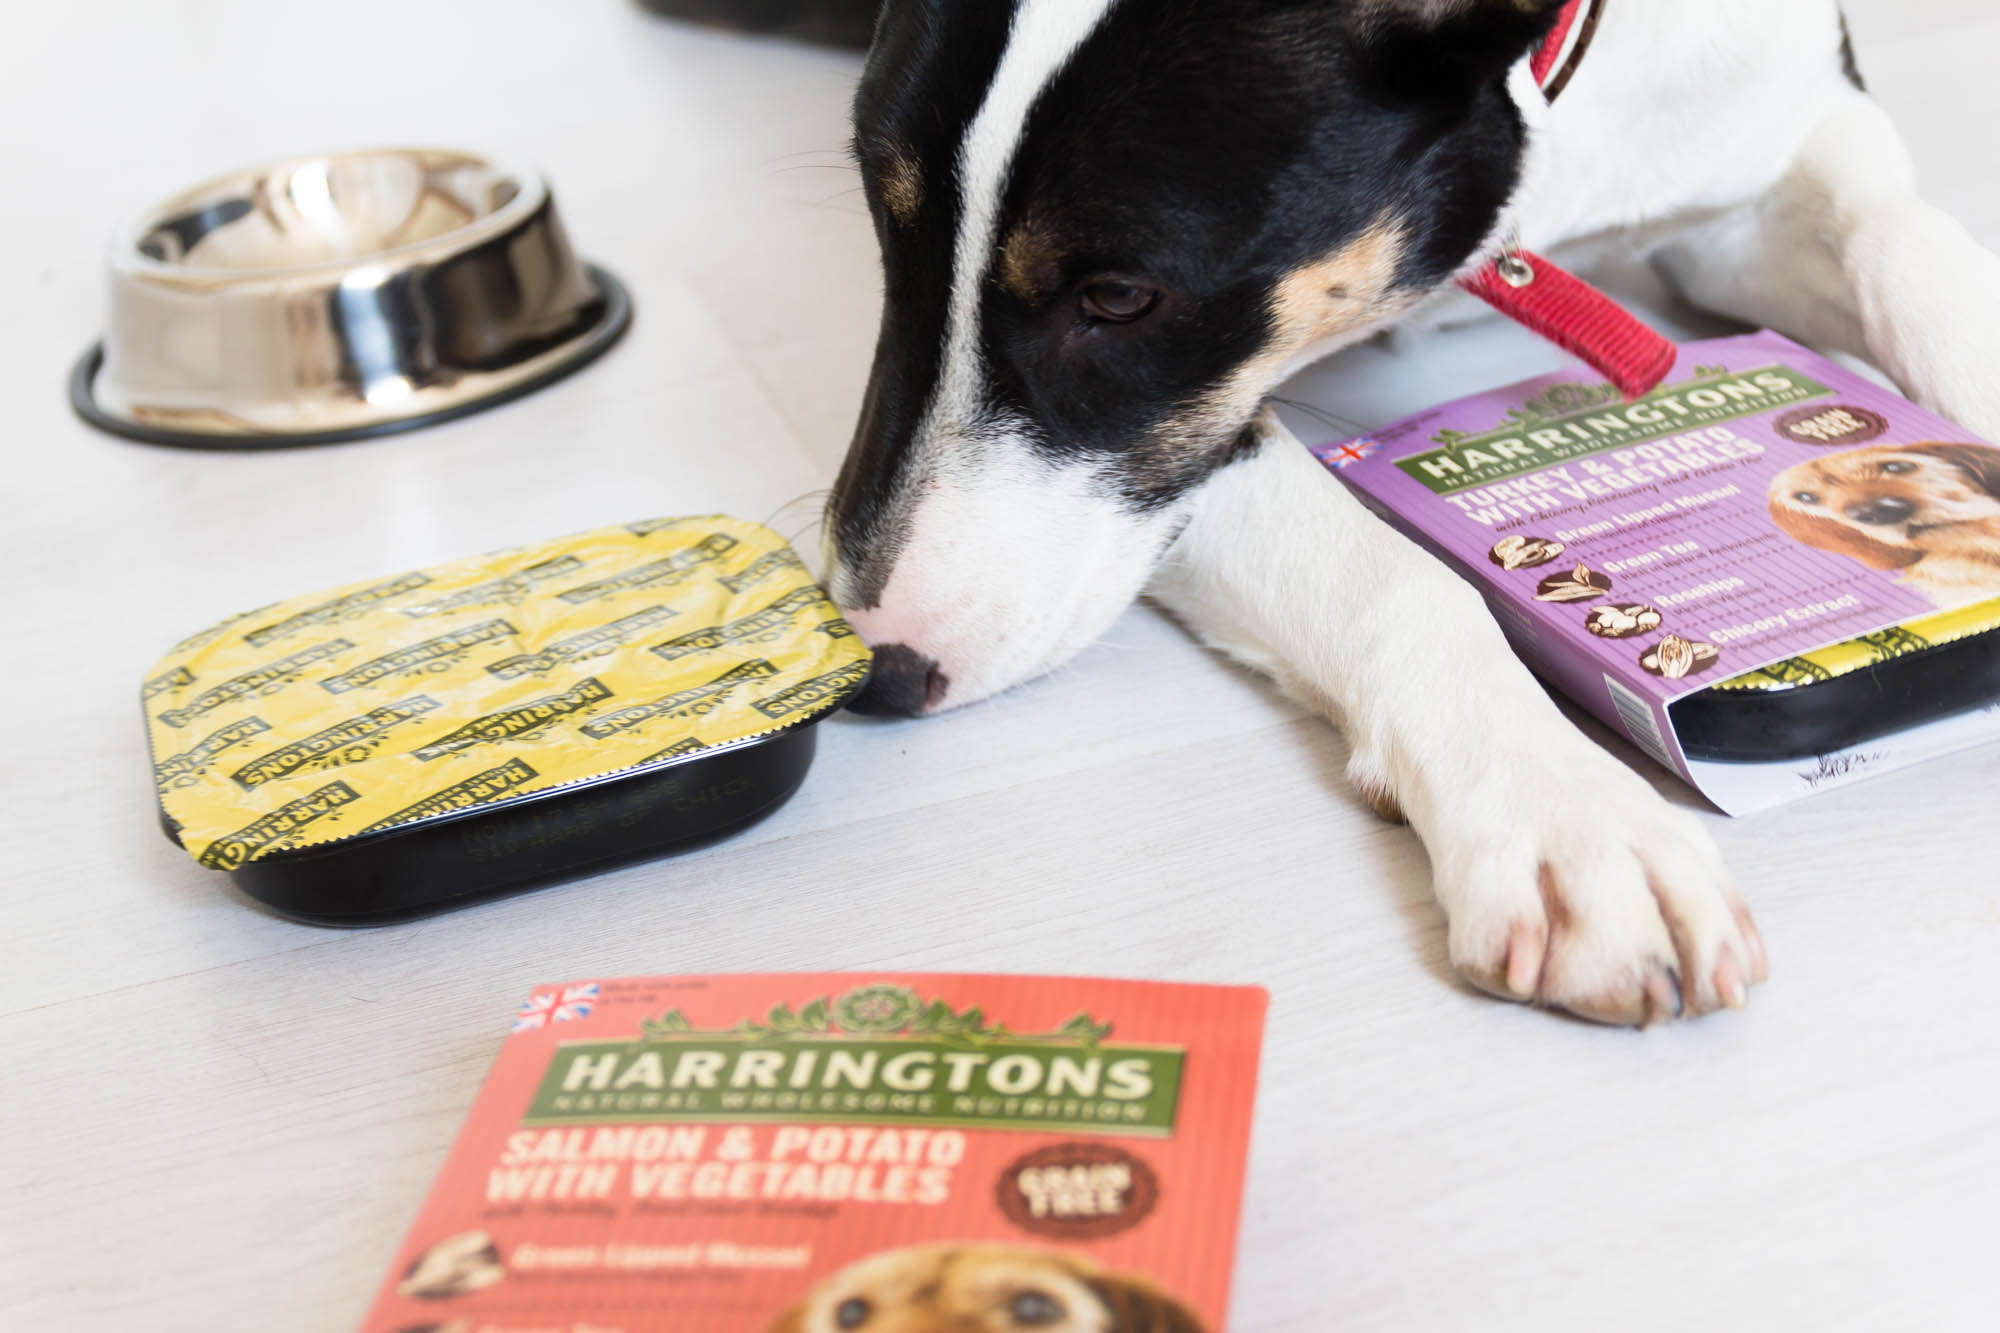 Harringtons Dog Party